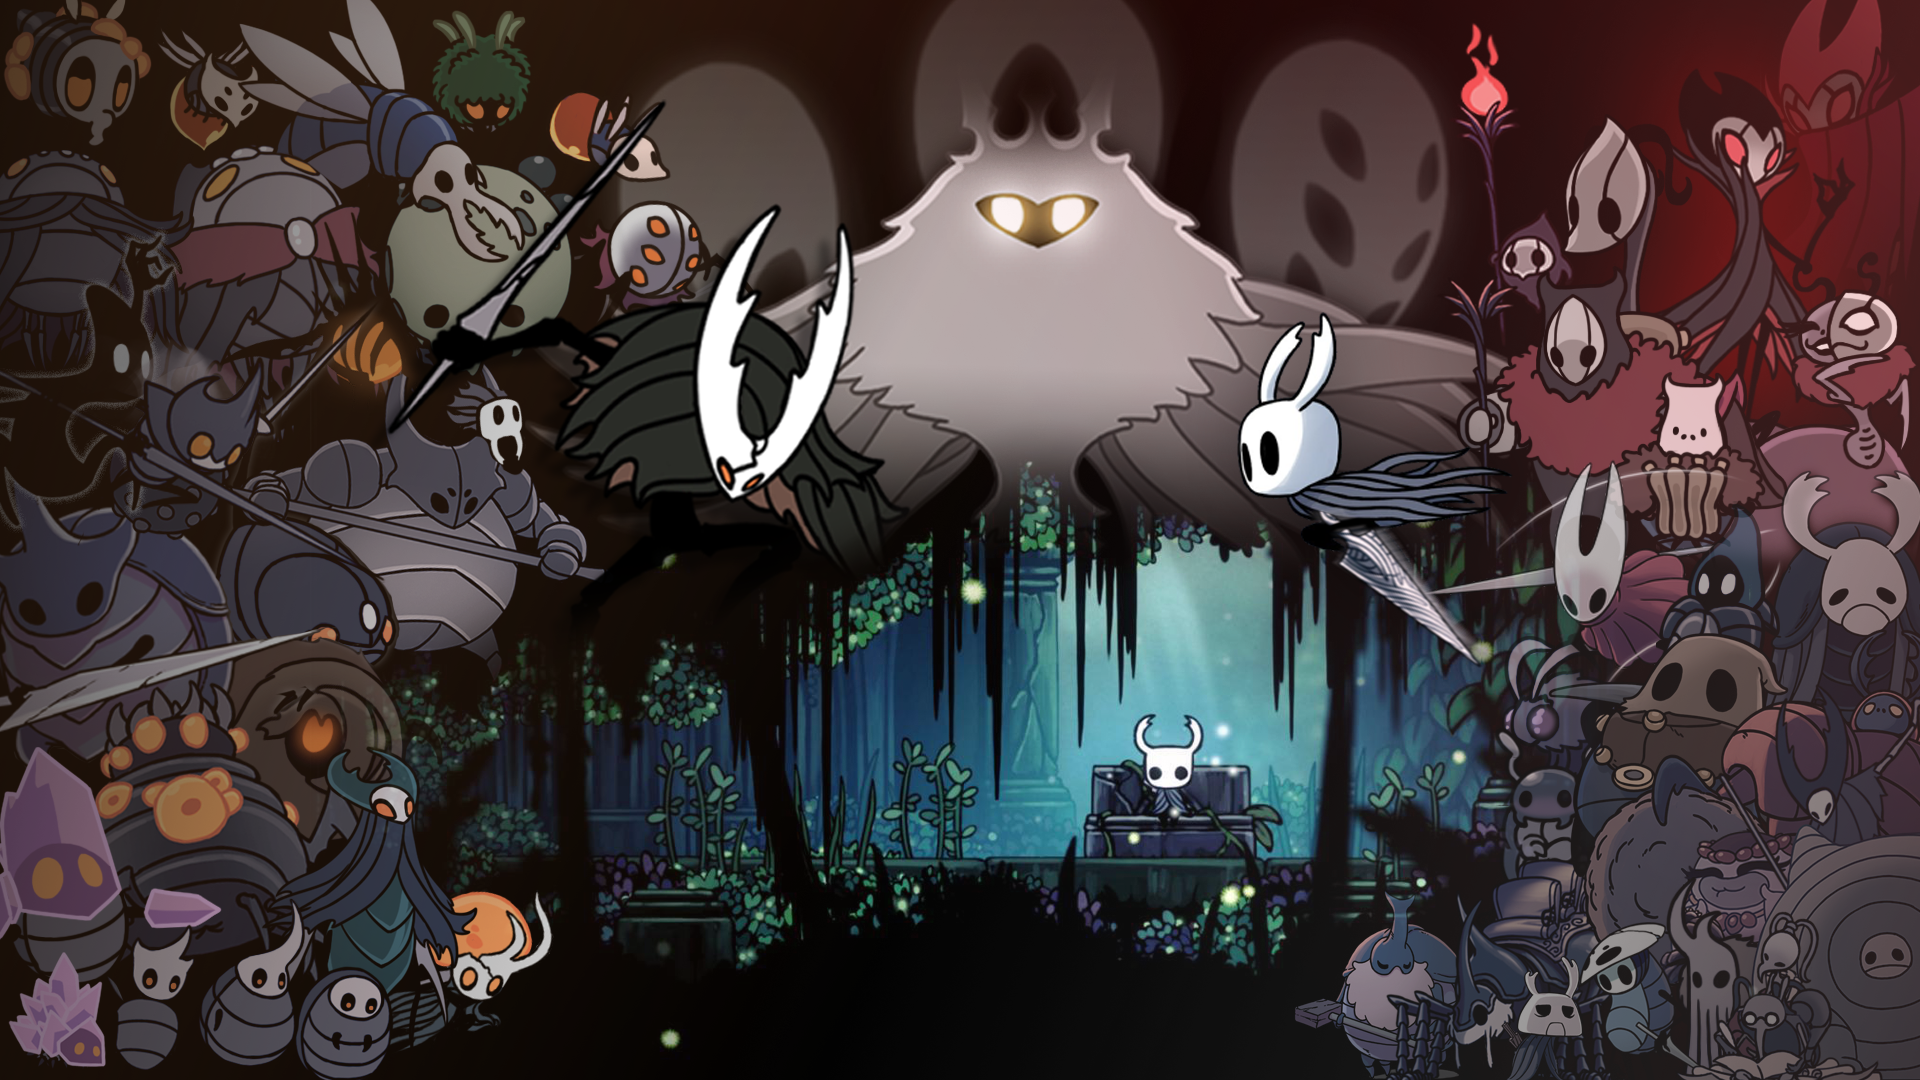 Hollow Knight Wallpaper Finished 1920x1080 No Godmaster Related Bosses Yet Need Trendy Iphone7 Iphone7plus Case Cartoon Wallpaper Hd Hollow Art Knight